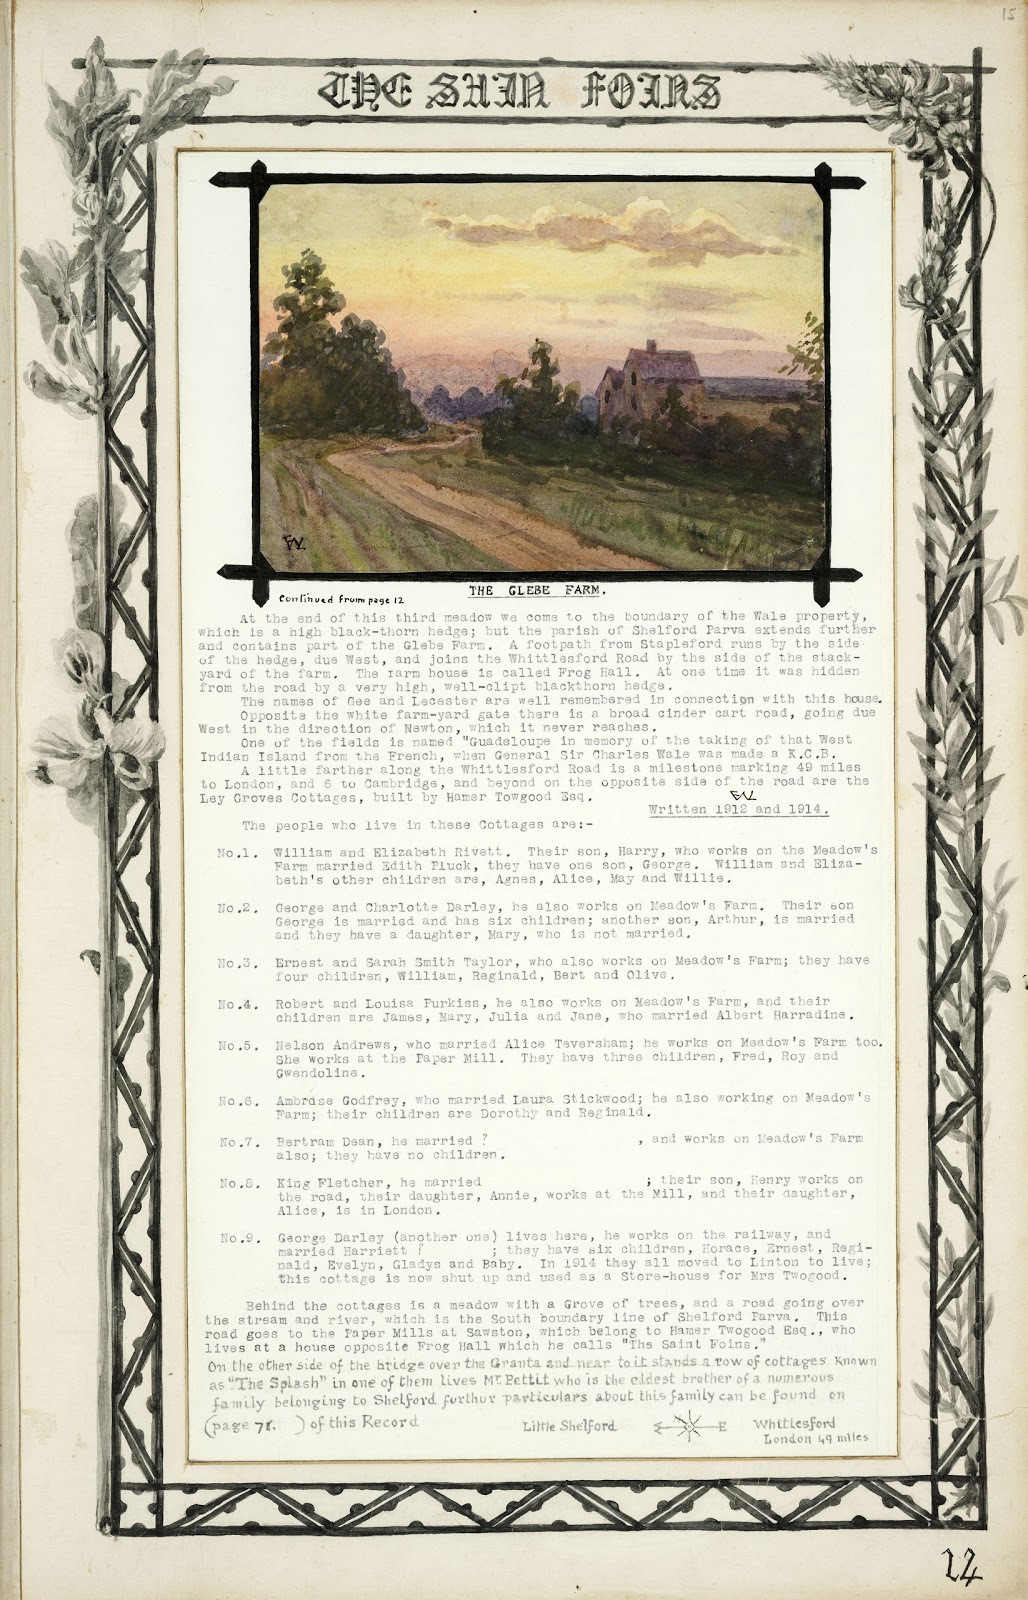 A Record of Shelford Parva by Fanny Wale P14 fo. 15, page 14: (a continuation of page 12). A coloured watercolour of Glebe farm and information on who lived in the cottages between 1912-1914. Inset within a picture mount [Mount A] decorated with black and white watercolour of foliage surrounds the page. [fo.14]